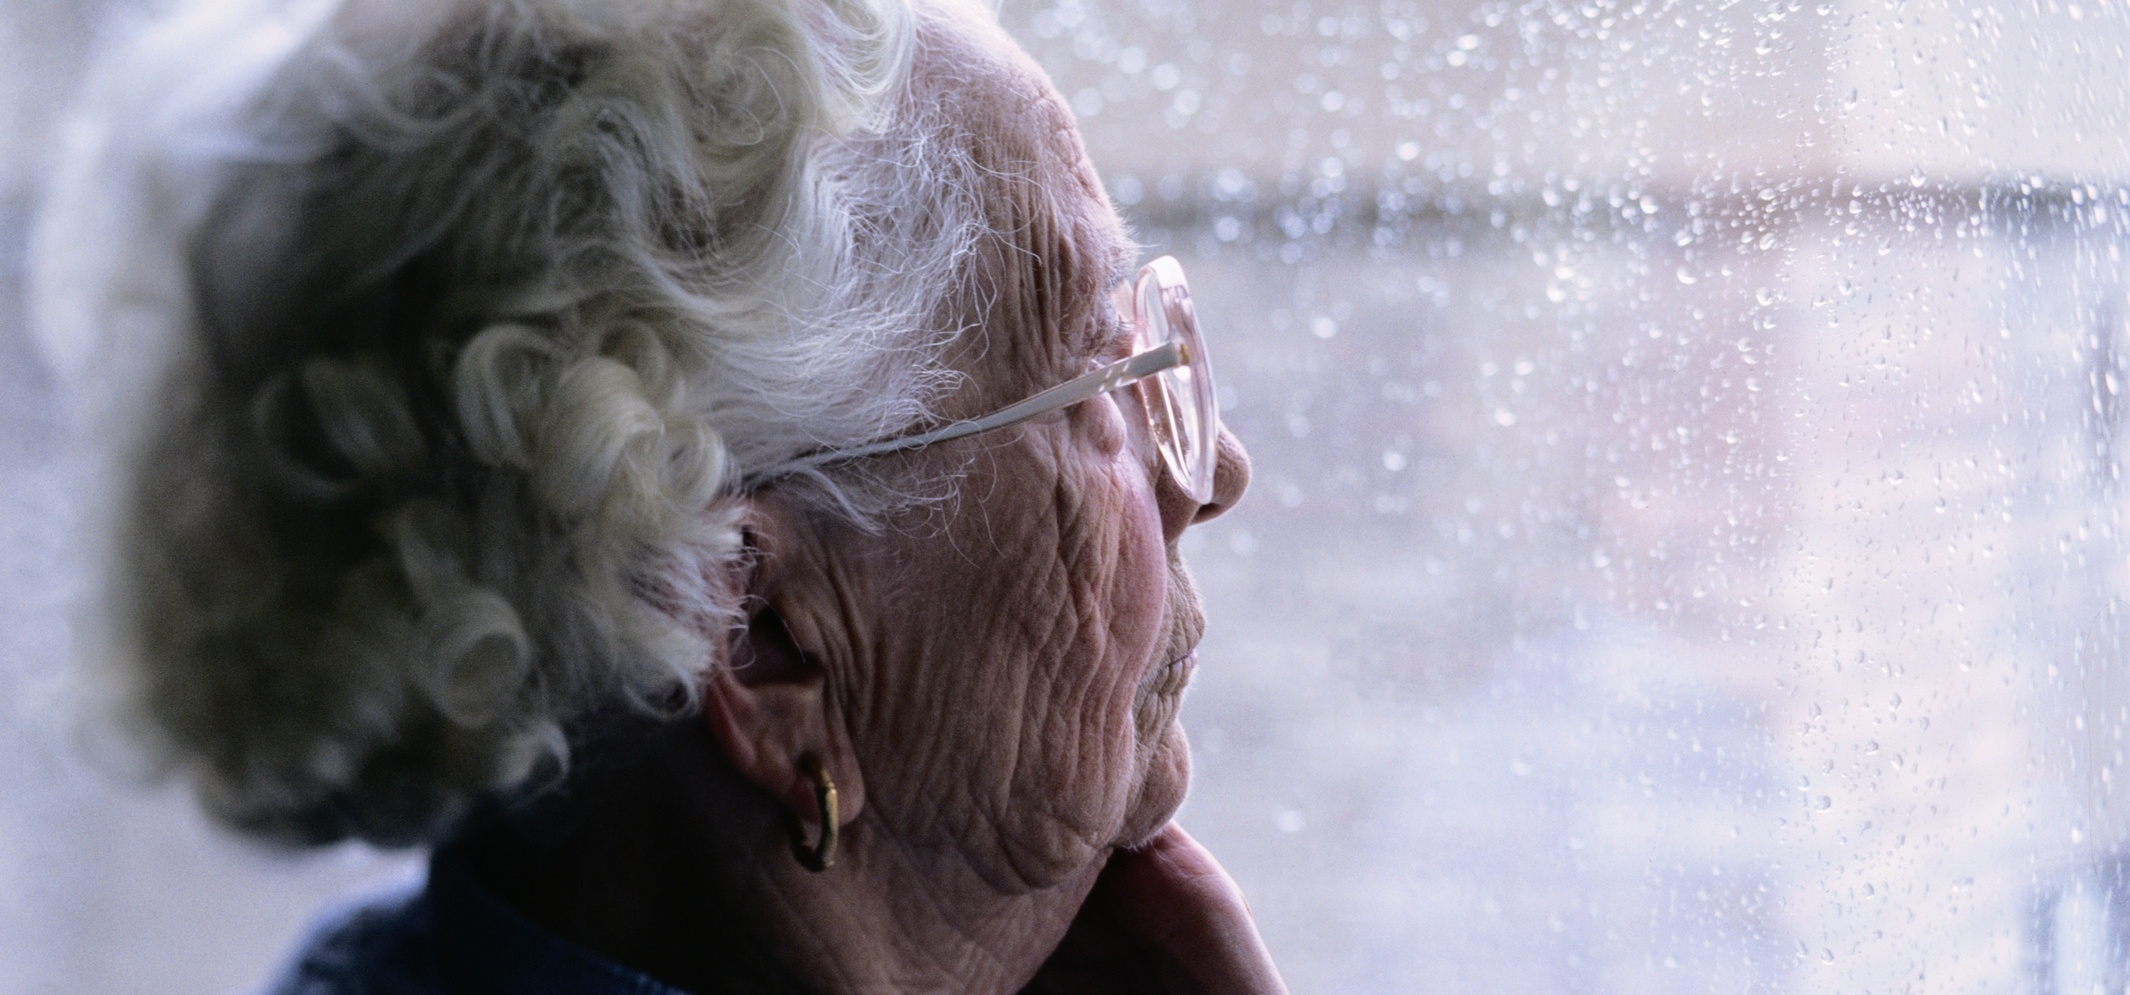 Care home visits resume in England